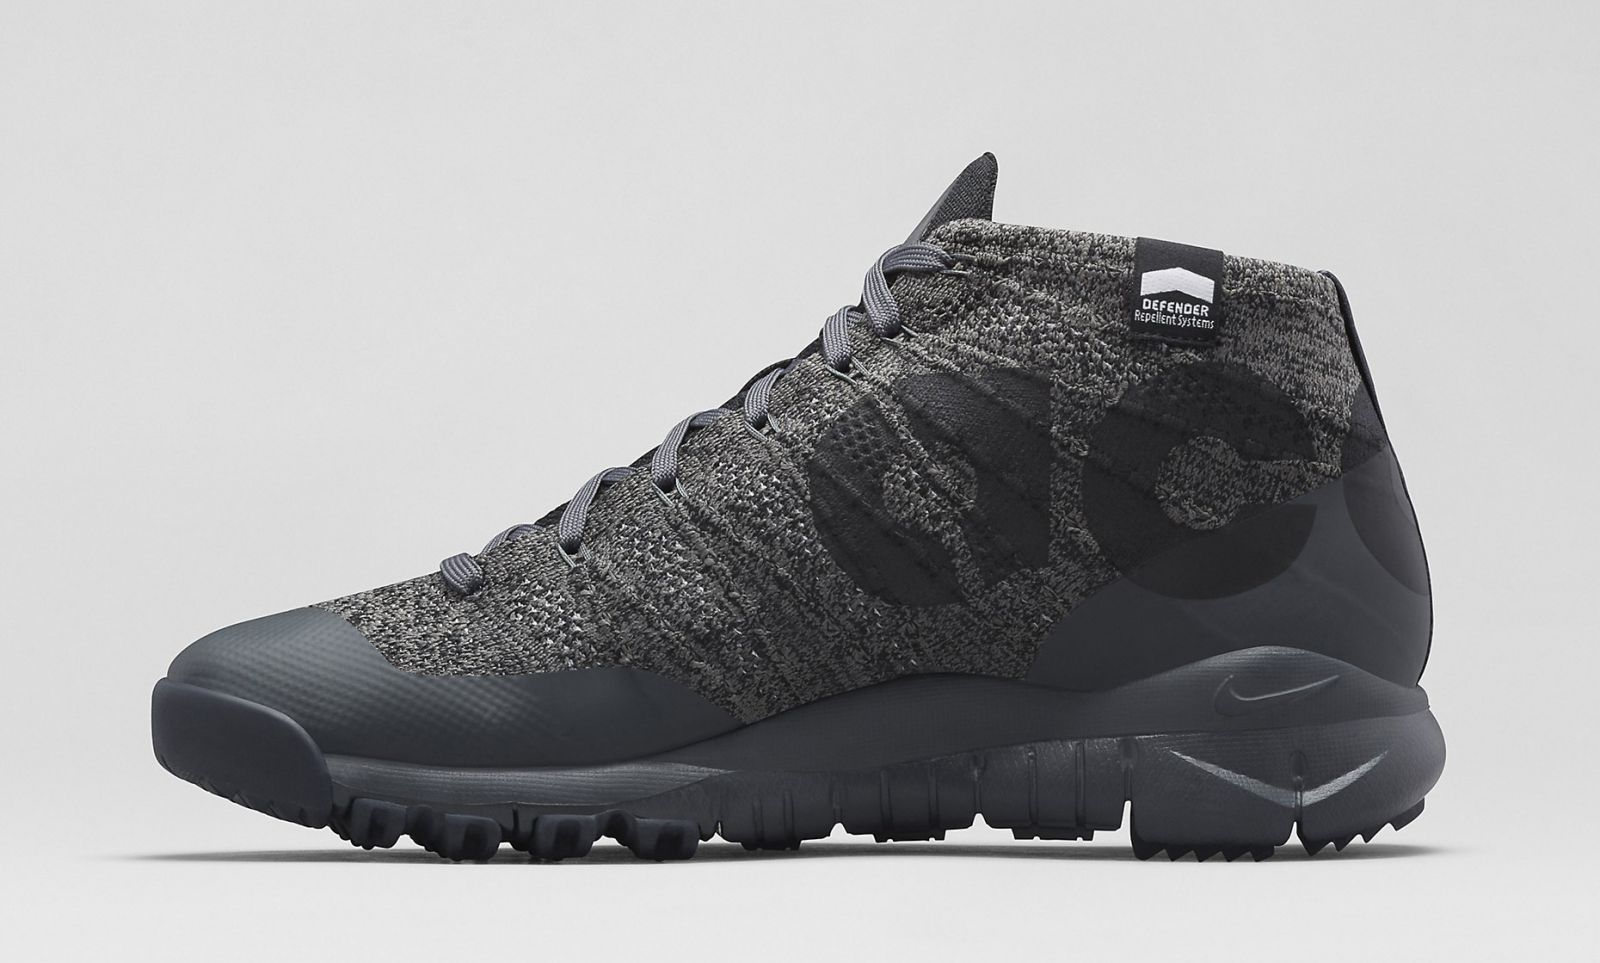 buy online f7f6a 29aed Nike ACG Flyknit Trainer Chukka FSB Release Date  12 18 14. Color   Black Anthracite-Black Style    728656-001. Price   220